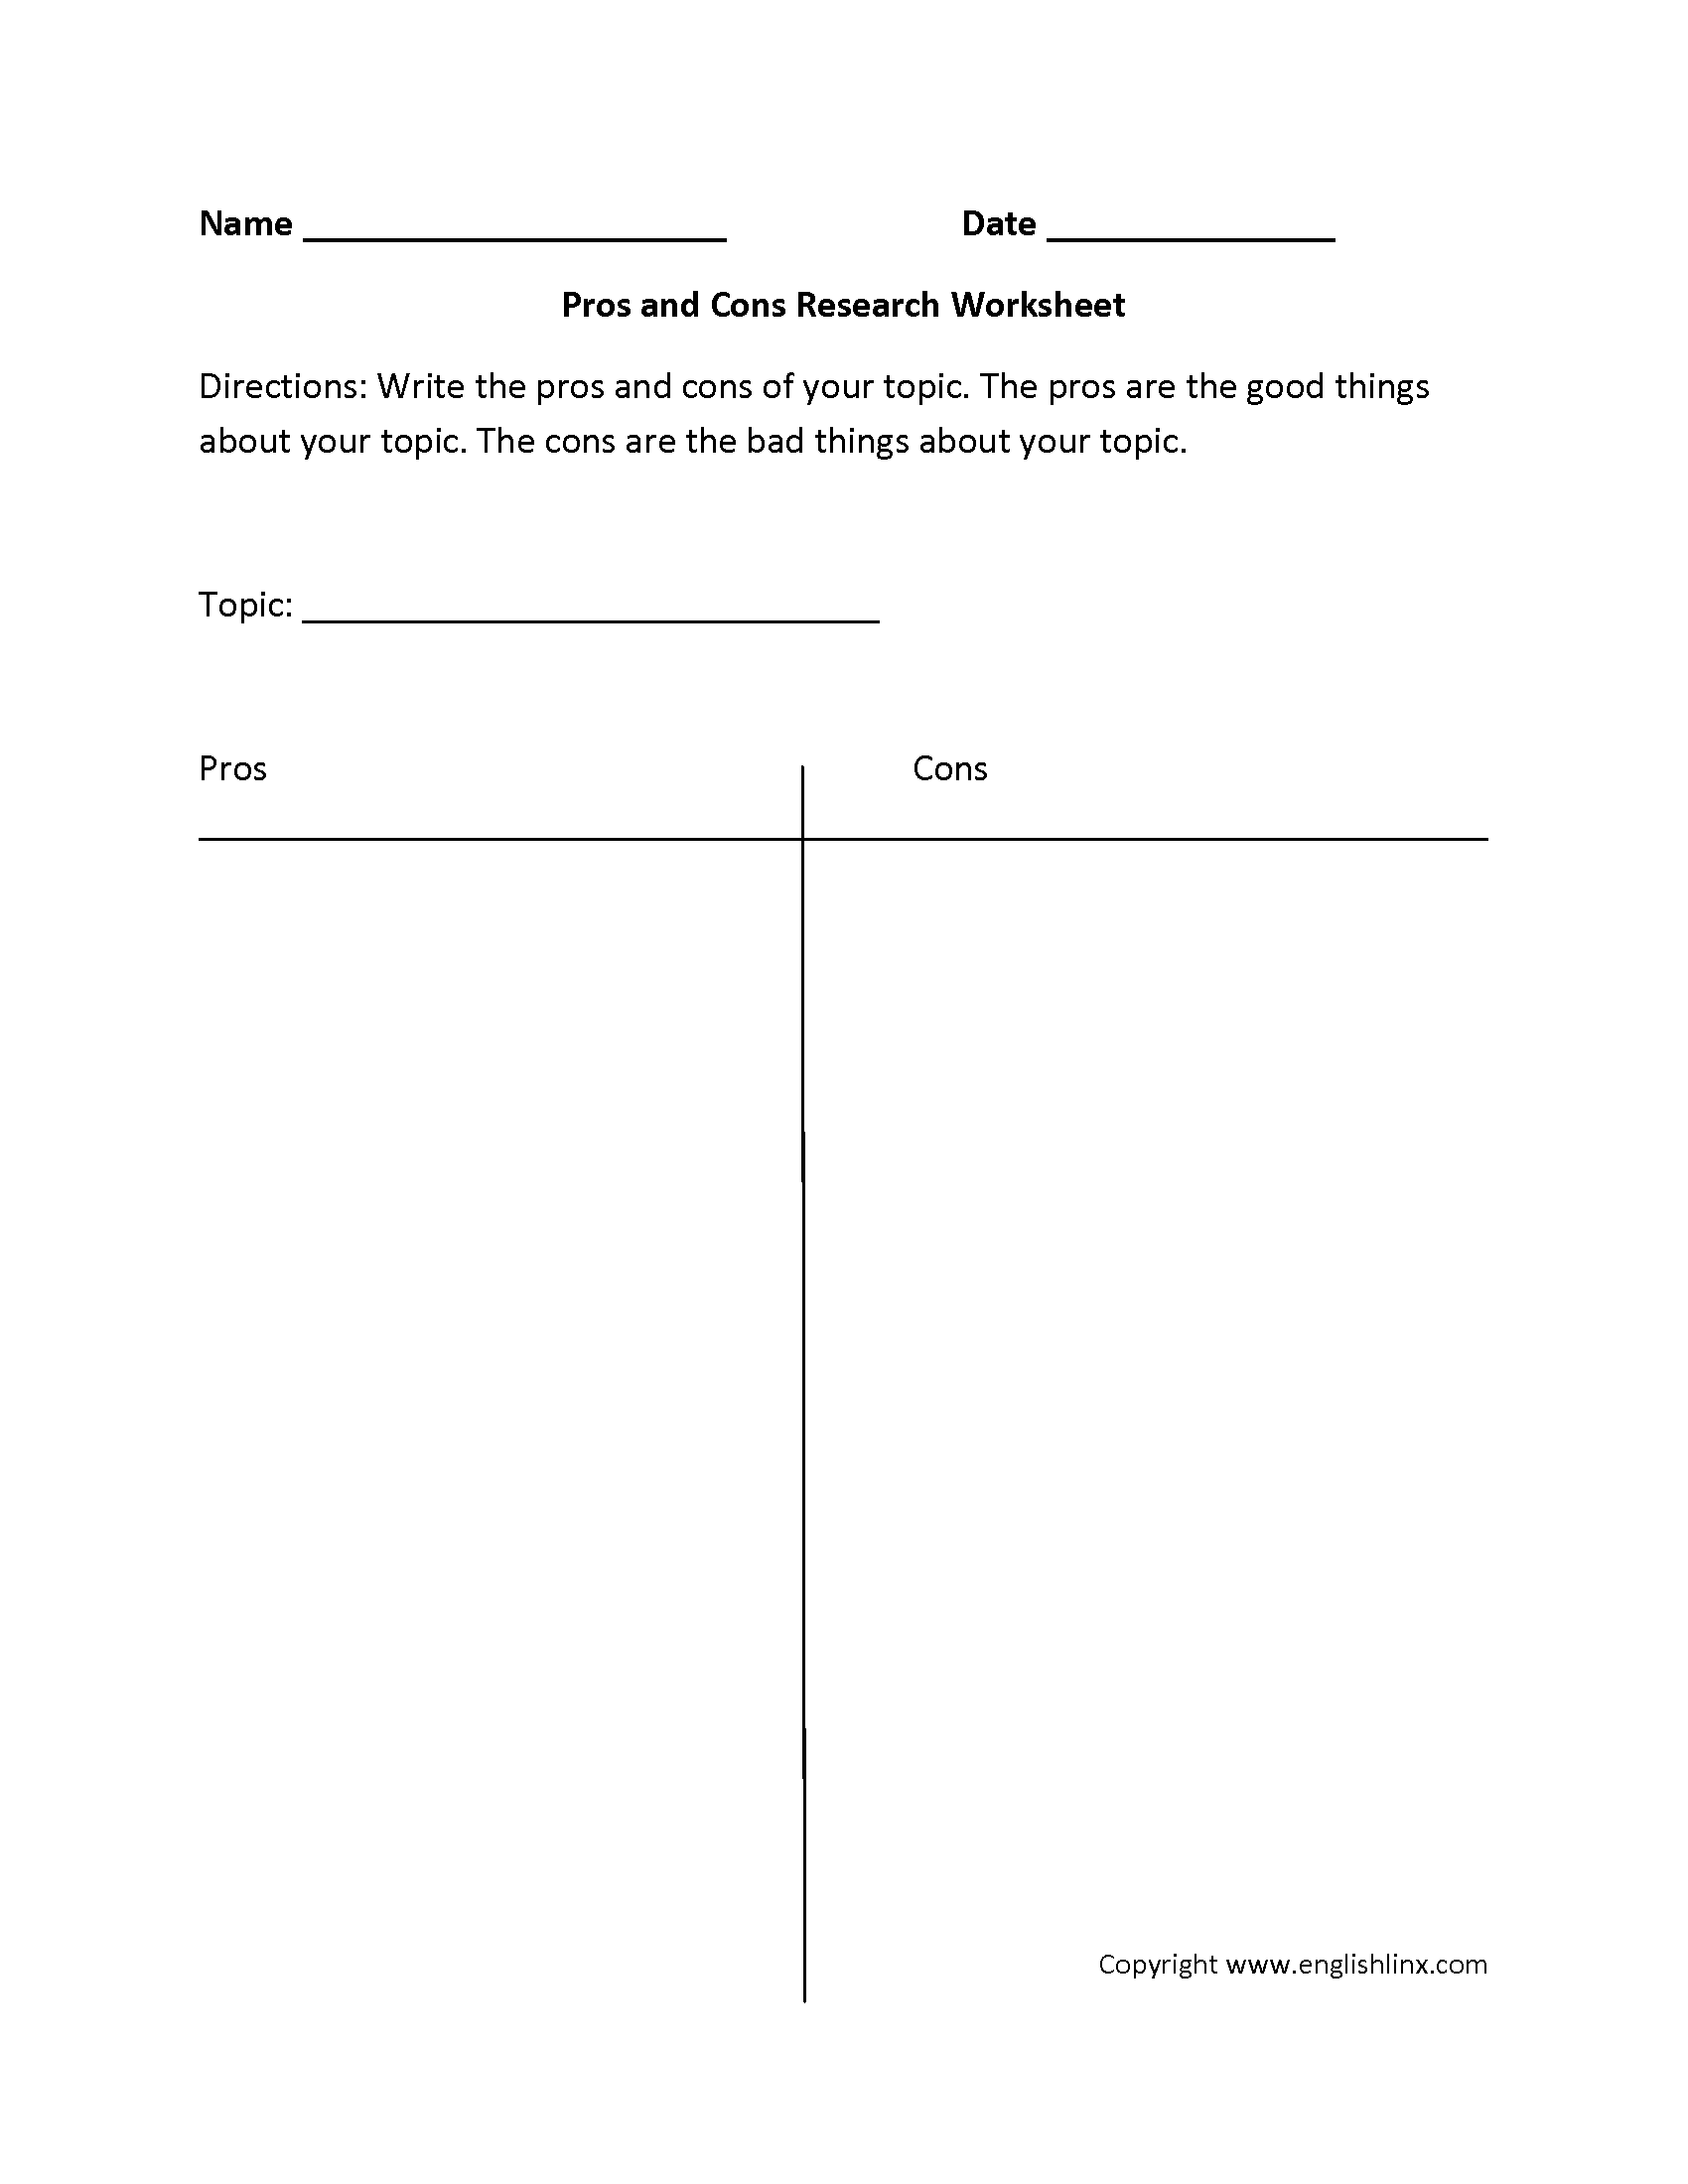 Pros And Cons Research Worksheet